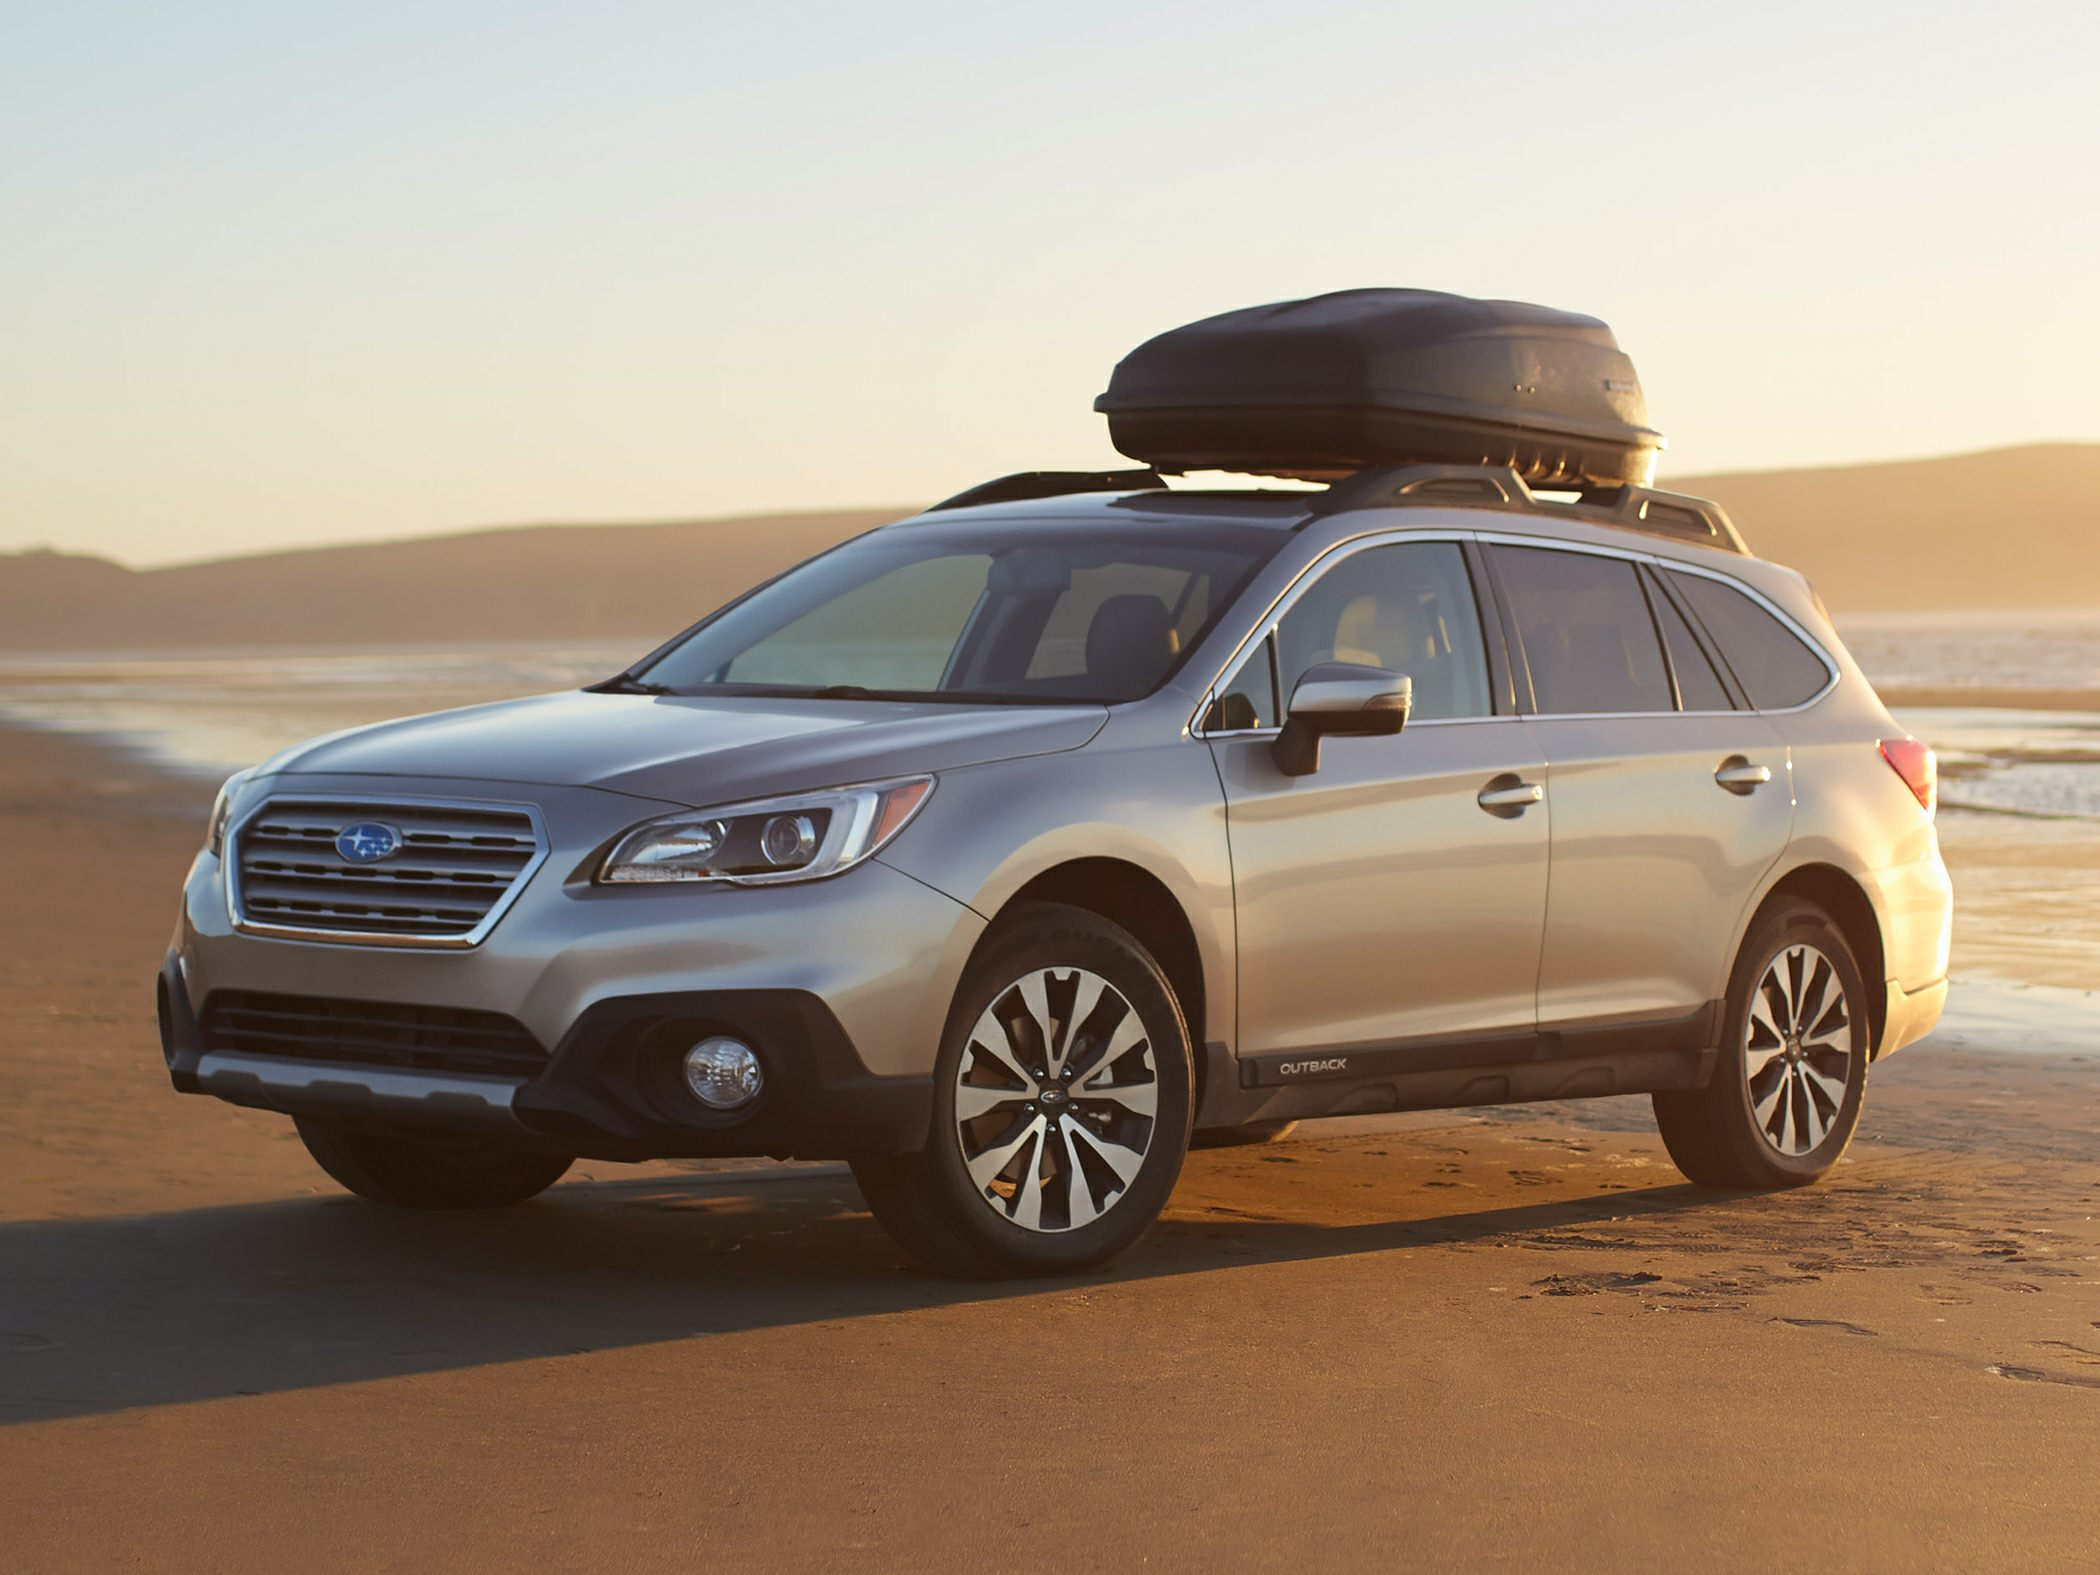 2017 Subaru Outback 2 5i Premium 4dr All Wheel Drive Wagon Specs And Prices